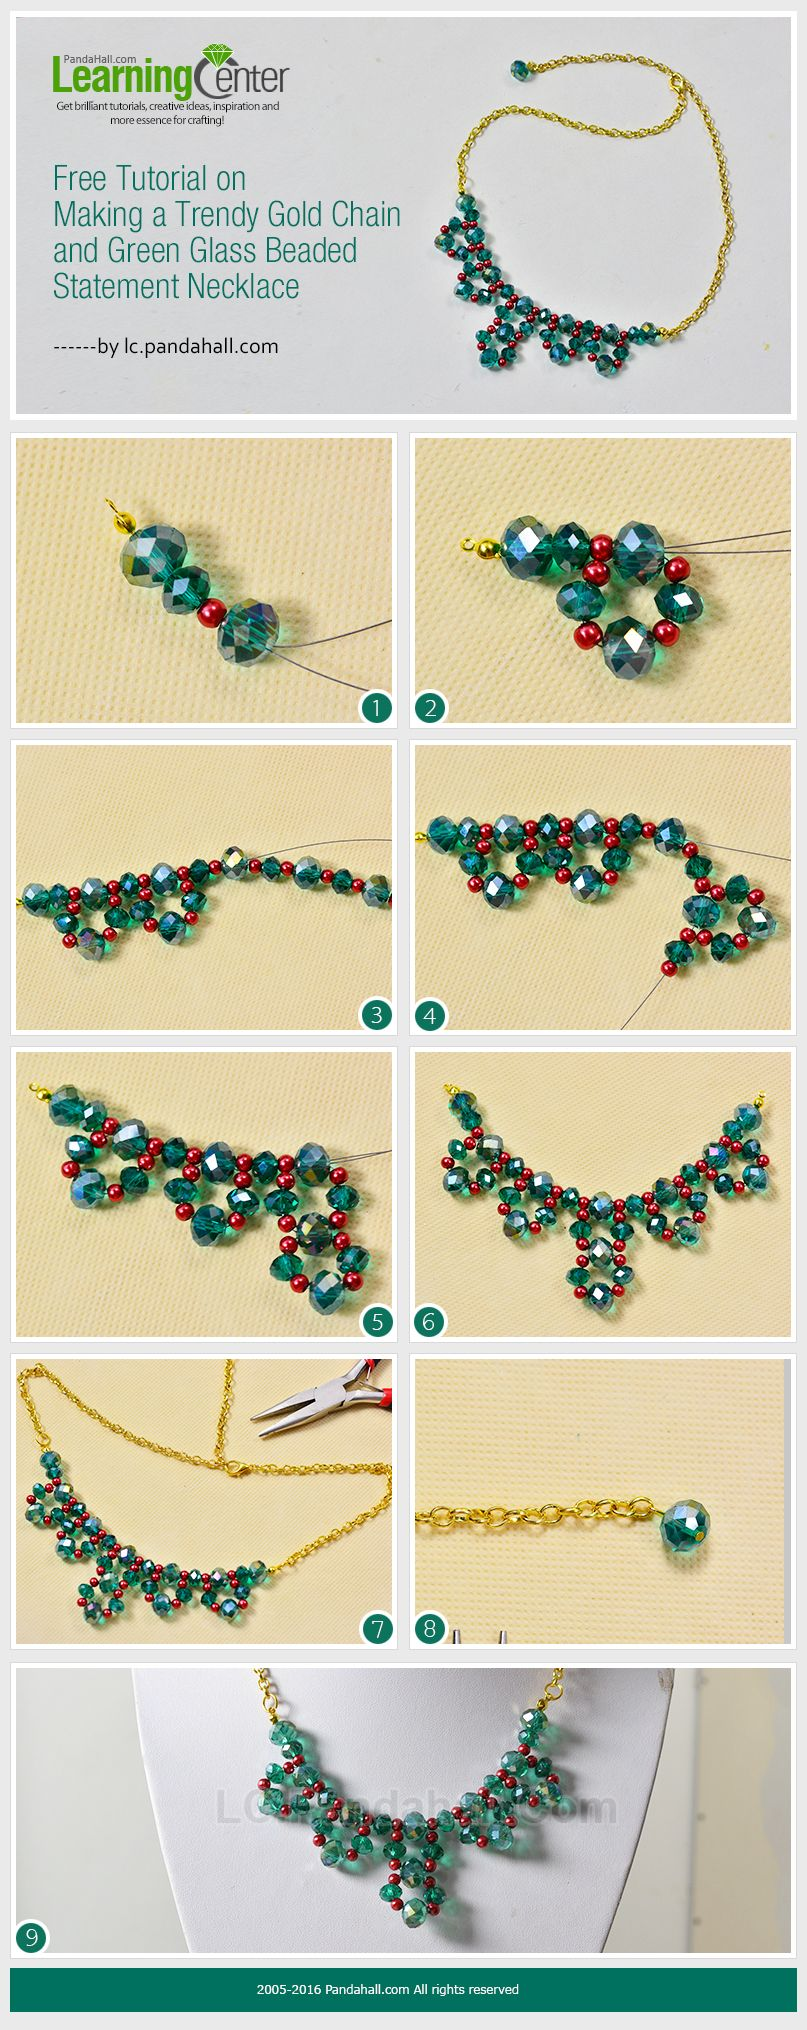 handmade glass beaded statement necklace diy jwewlry making tutorials techniques pinterest. Black Bedroom Furniture Sets. Home Design Ideas